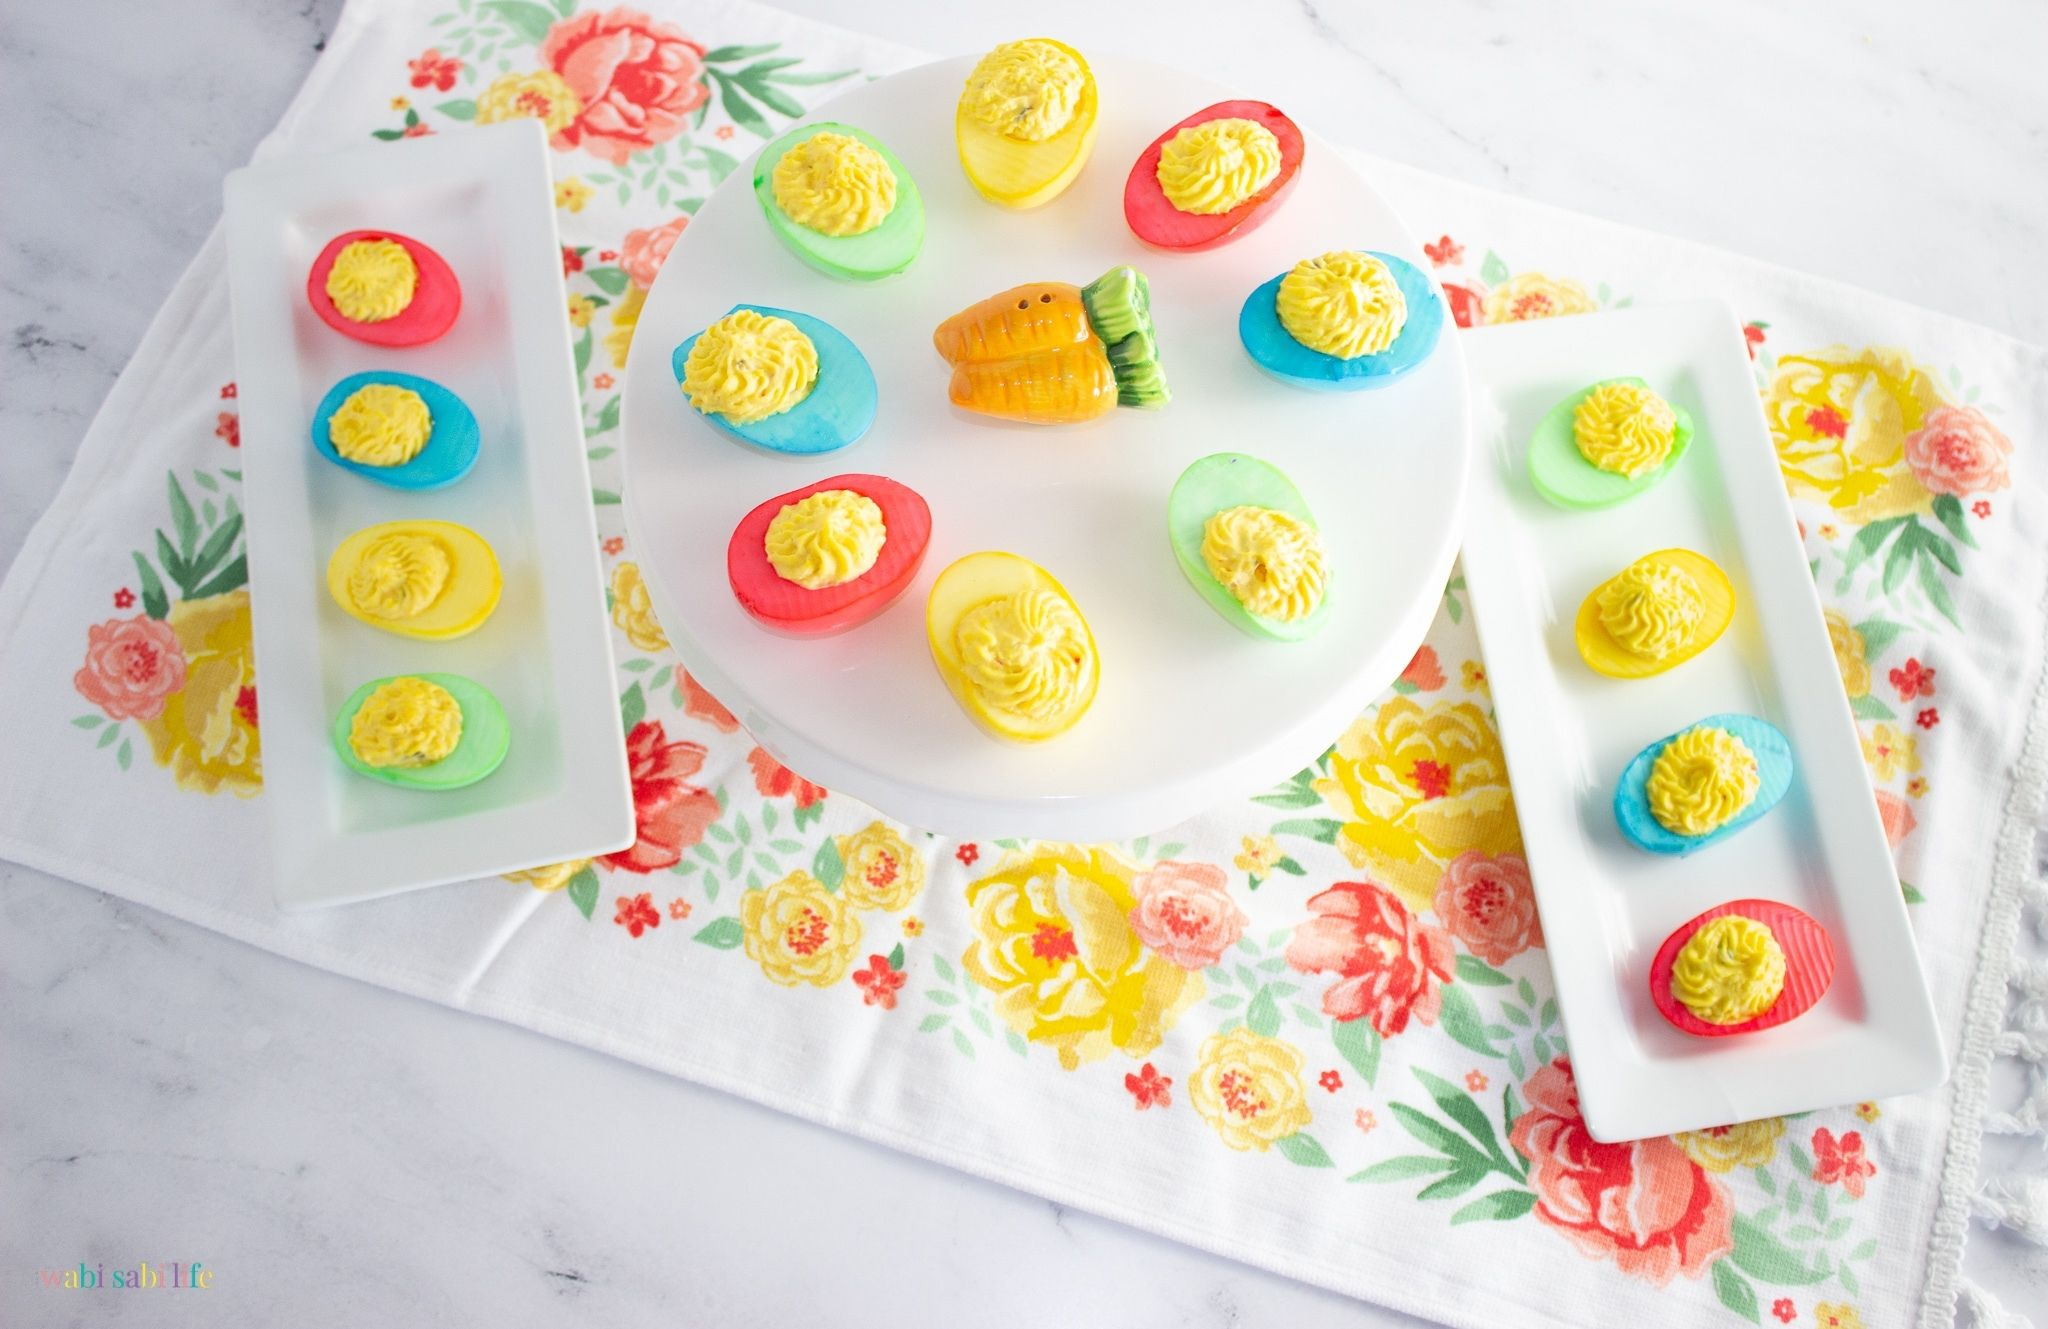 Two White trays and a cake stand full of brightly colored deviled eggs